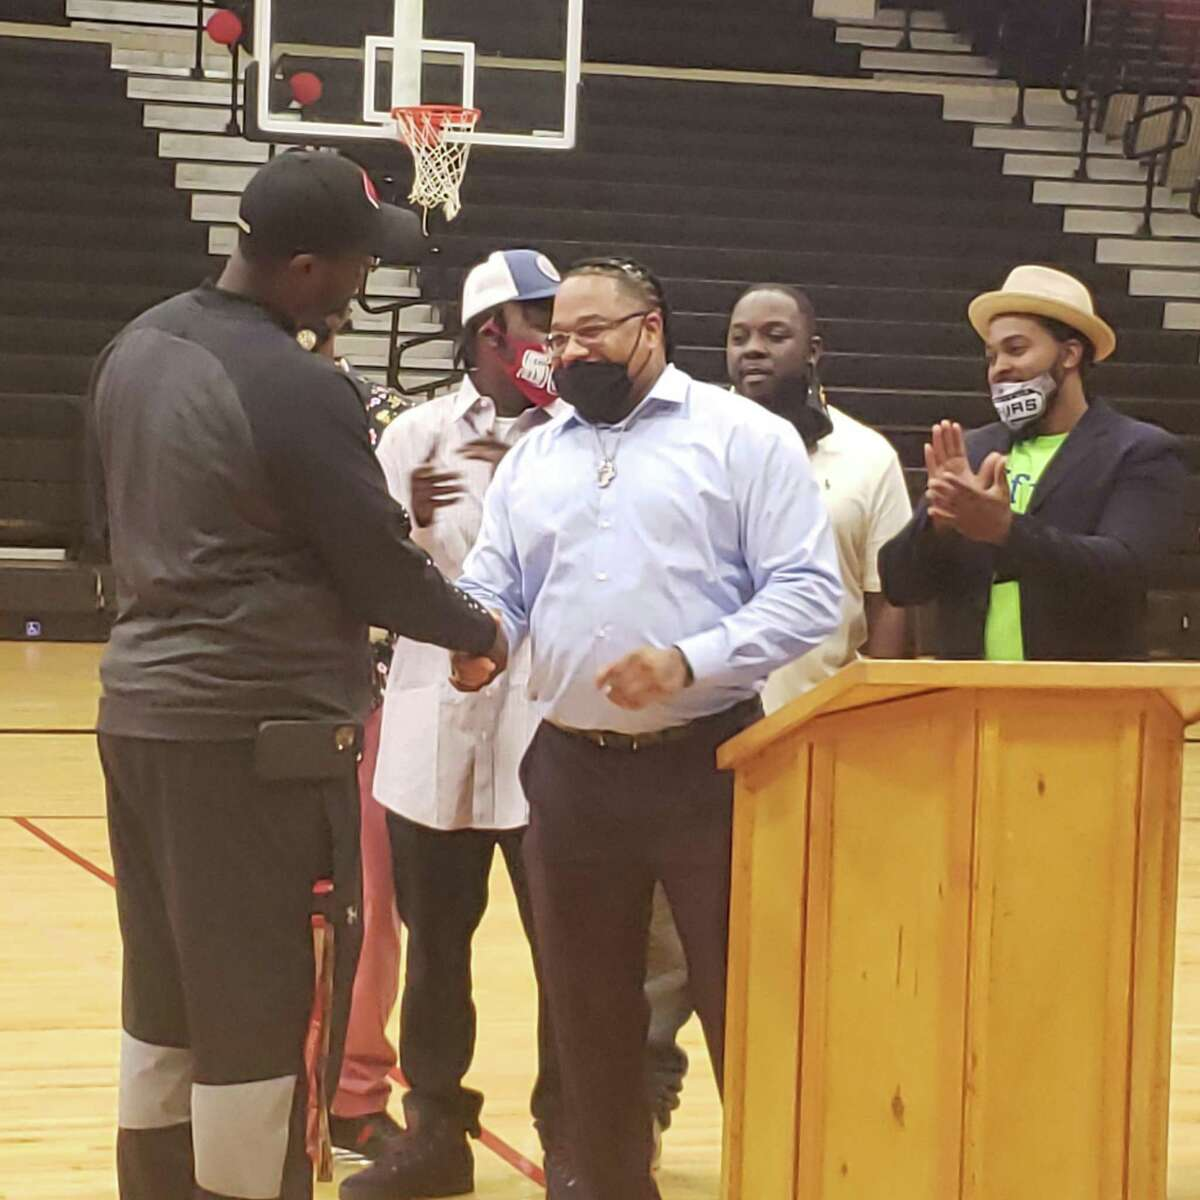 Milas Williams, from the GOOD Commission, presents a $1,700 check to coach Rodney Clark to help his basketball team attend the Texas Association of Basketball Coaches Boys Showcase from June 25 to June 27.